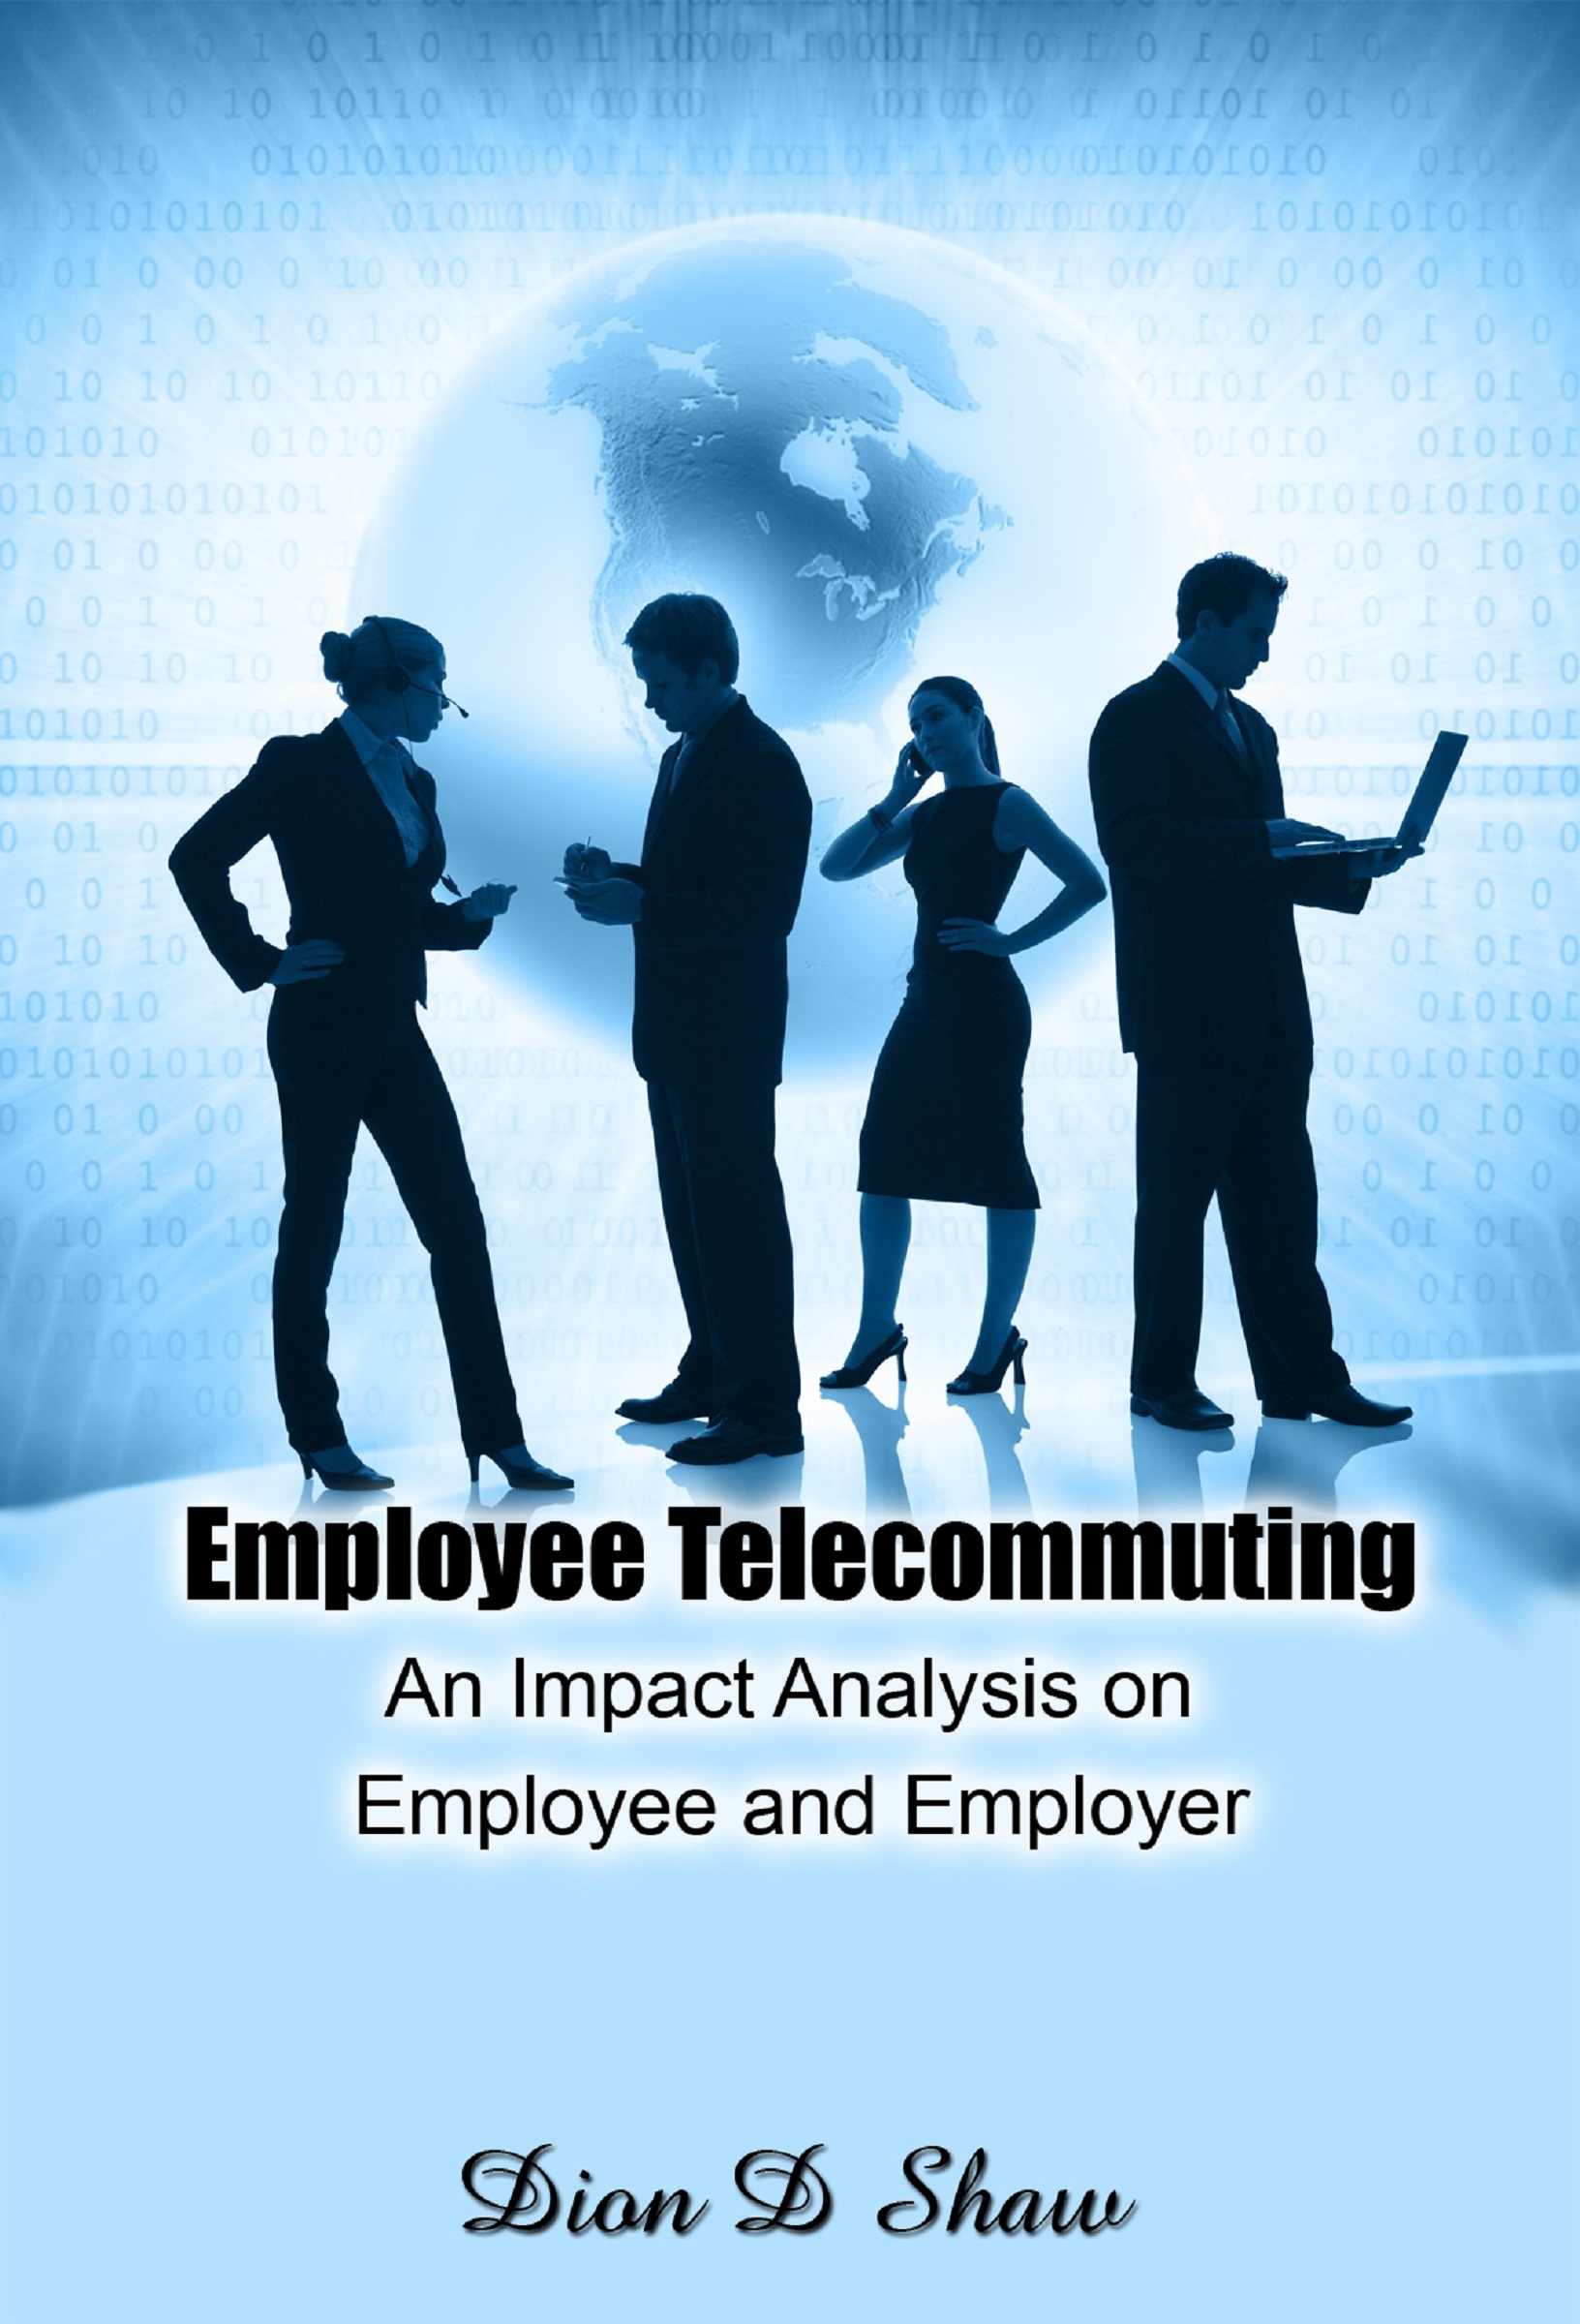 impact of telecommuting on workers, employers, and society essay Telecommuting essay examples 17 total results the benefits of telecommuting for the employer and employee the positive and negative effects of telecommuting.